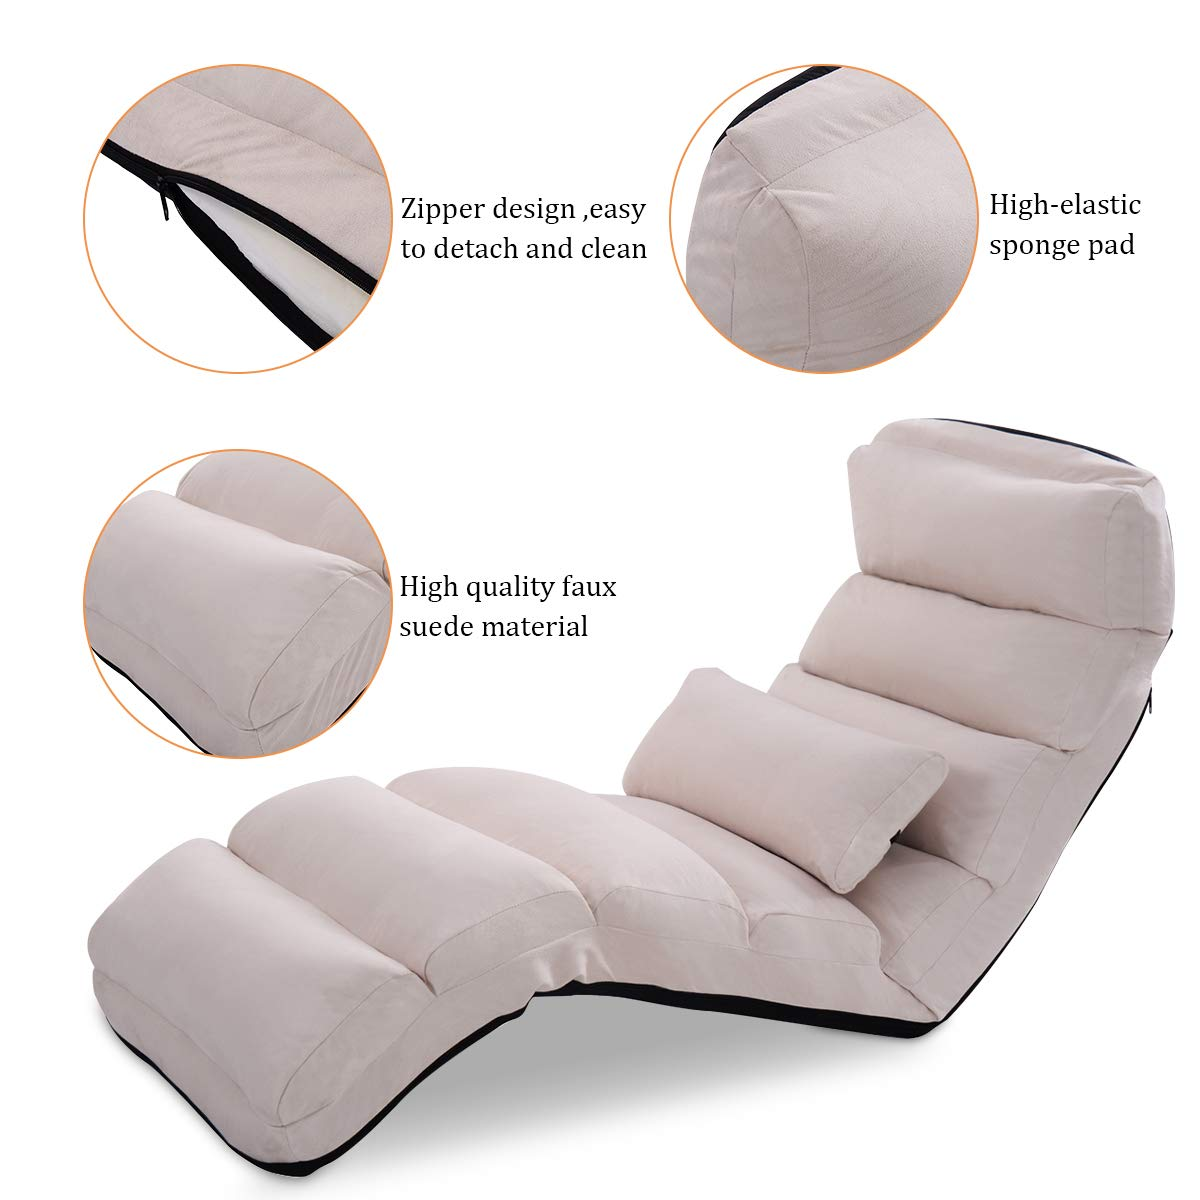 Giantex Folding Lazy Sofa Chair Stylish Sofa Couch Beds Lounge Chair W/Pillow (Beige)